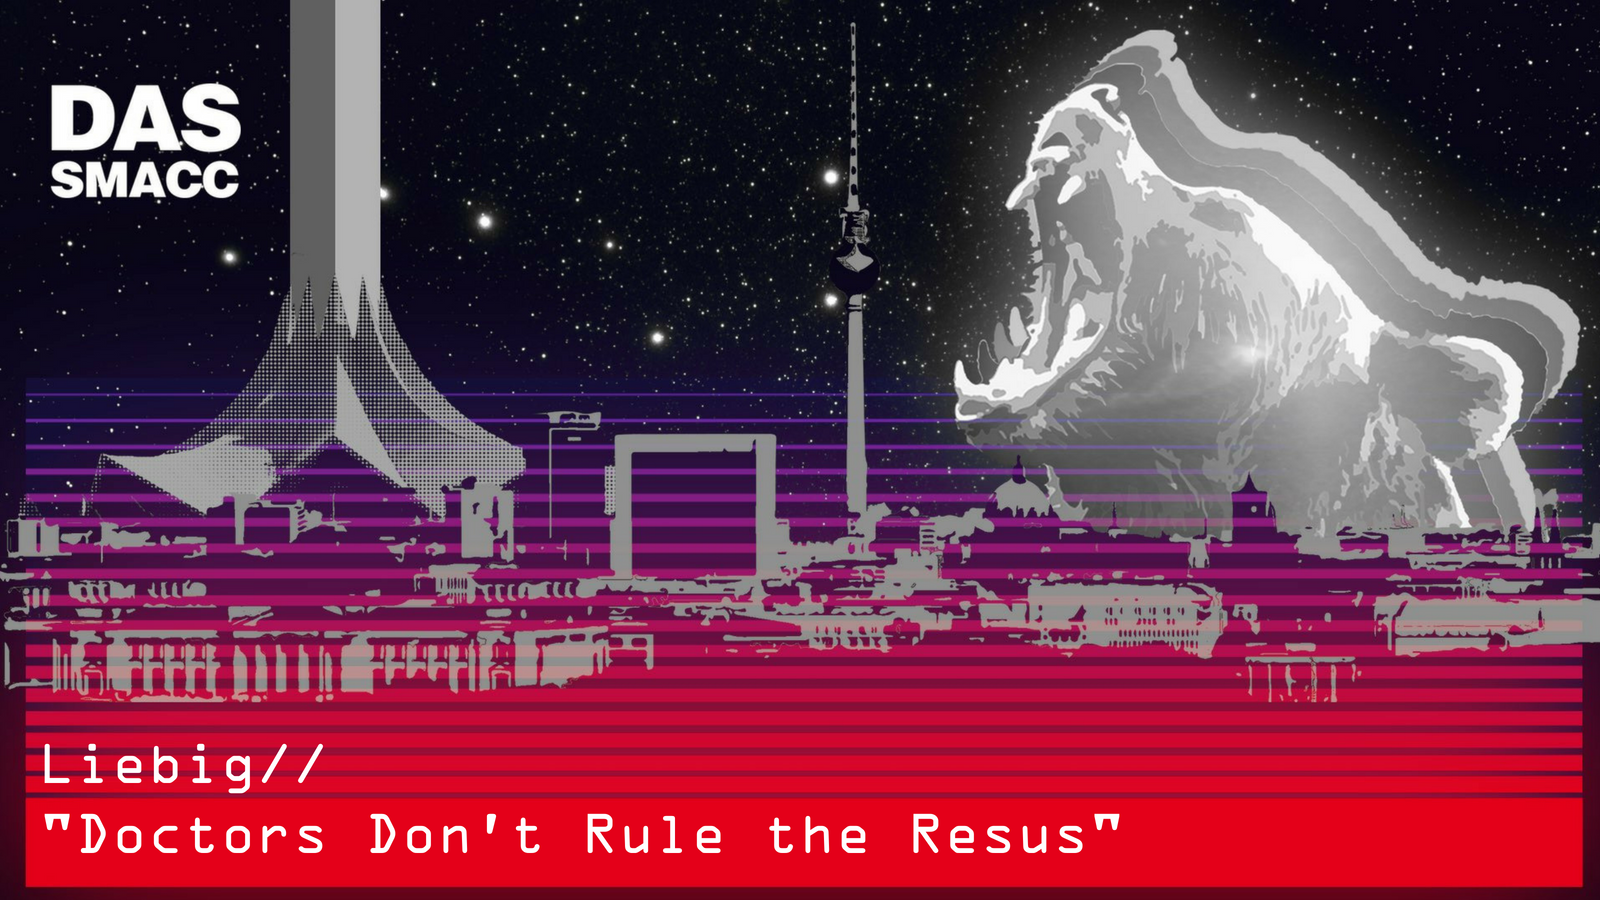 Doctors Don't Rule the Resus